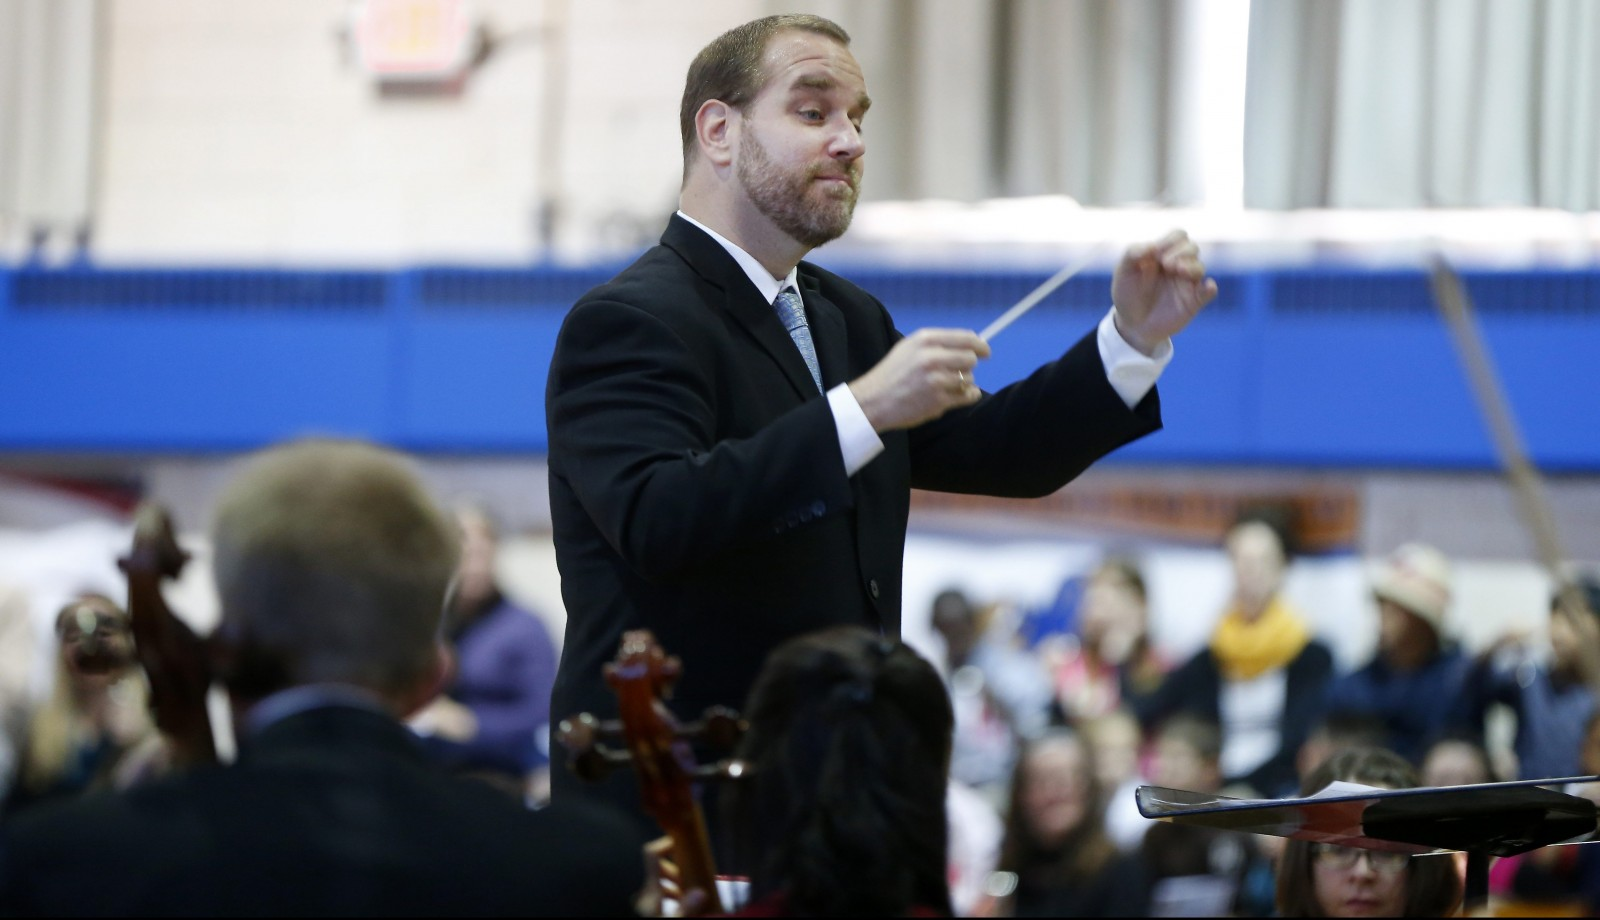 Stefan Sanders is the new music director of the Greater Buffalo Youth Orchestra. (Mark Mulville/Buffalo News file photo)